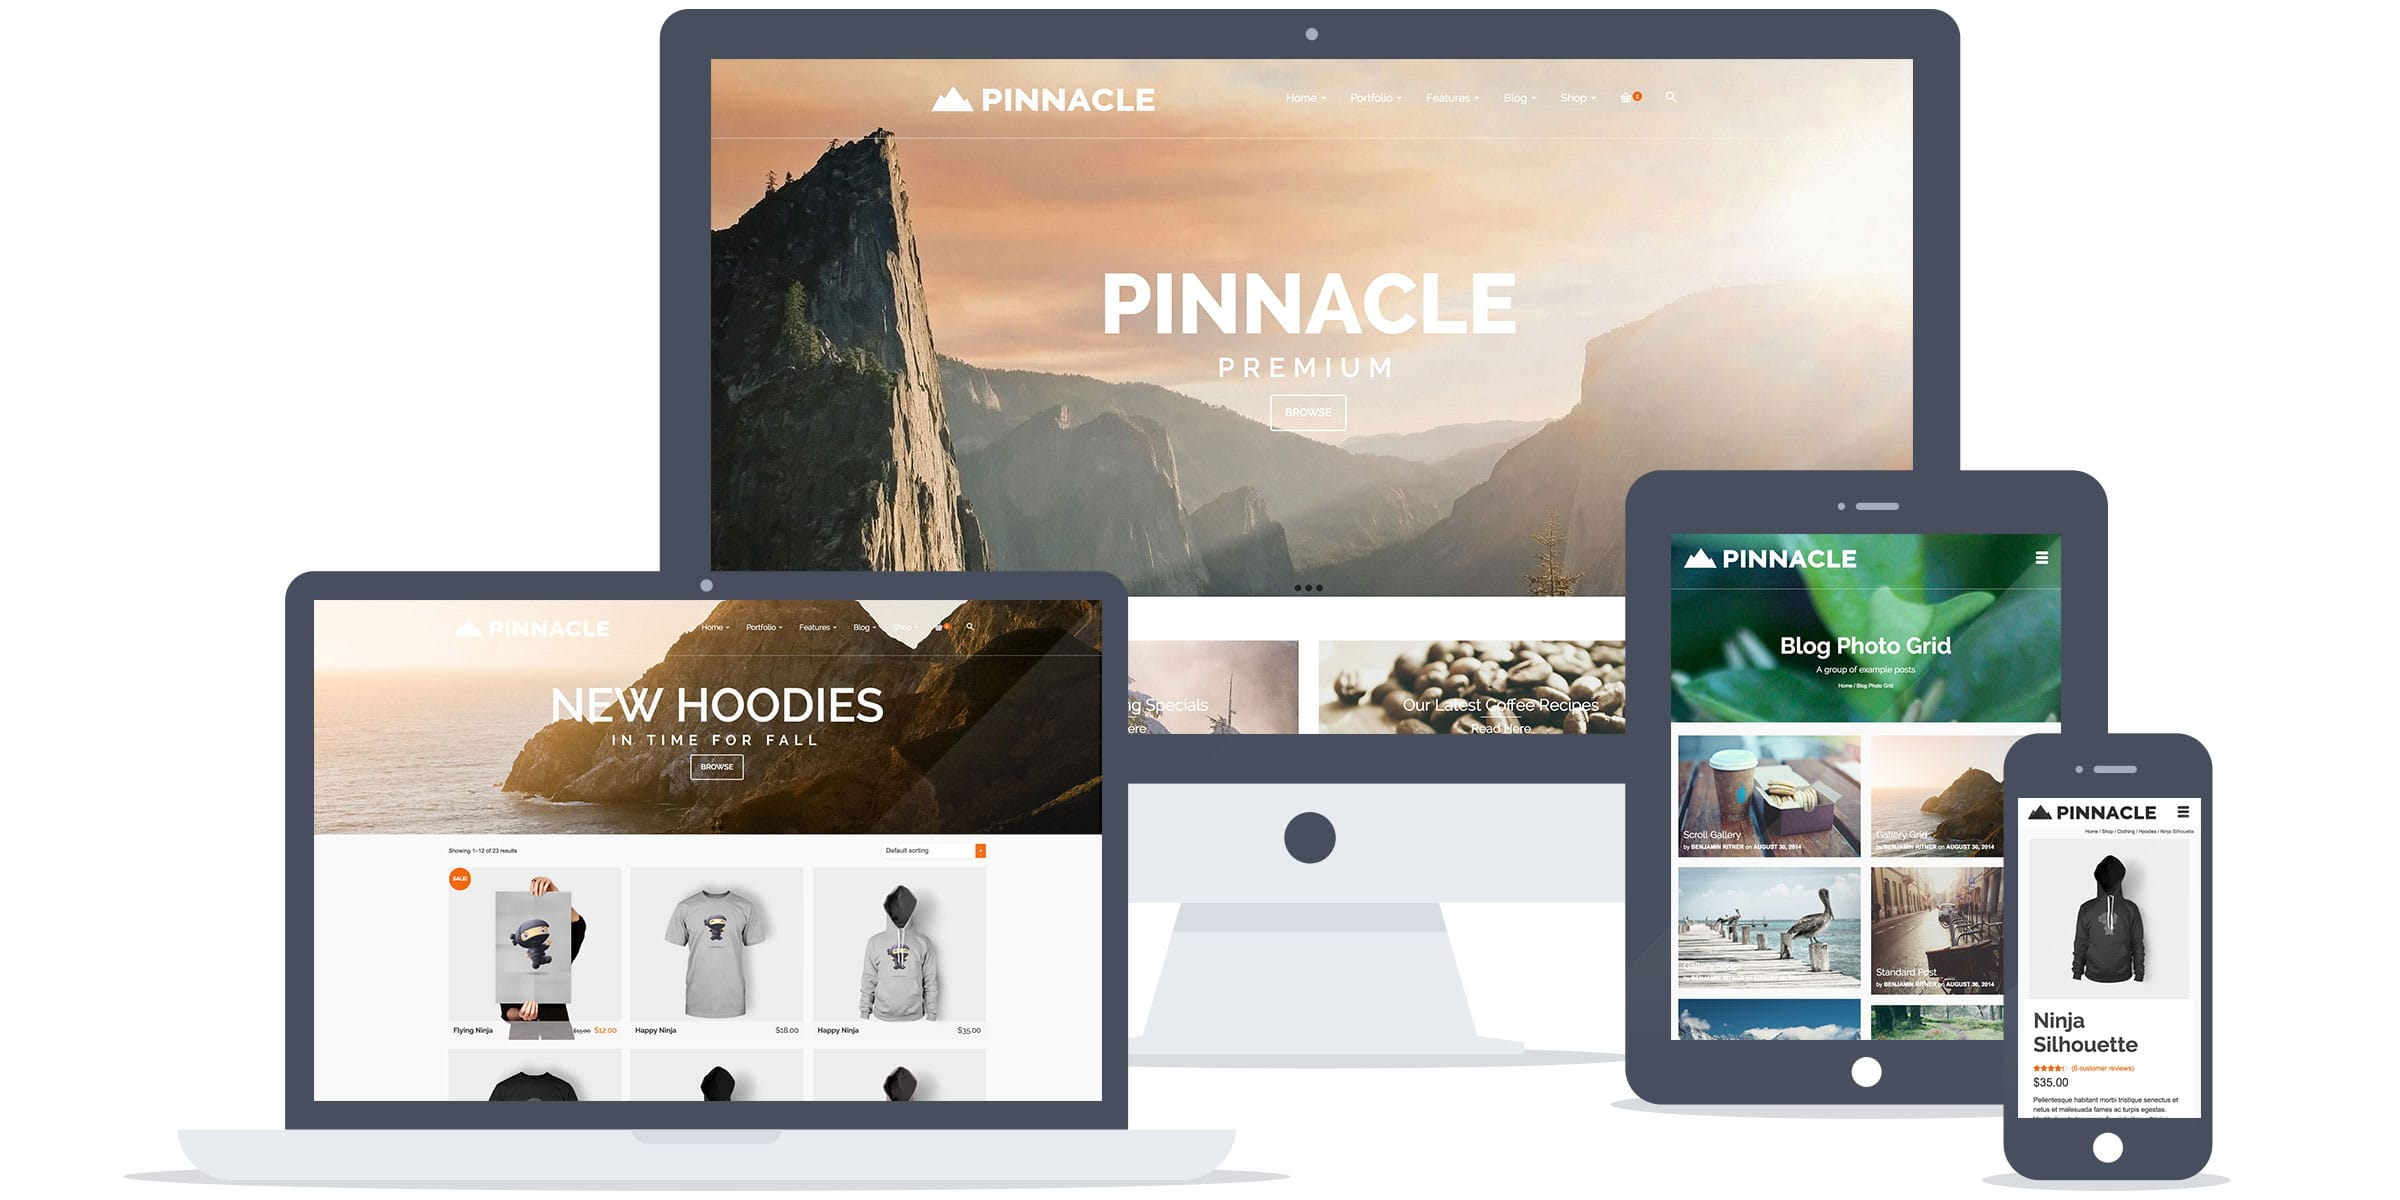 pinnacle_premium-min.jpg (2400×1200)